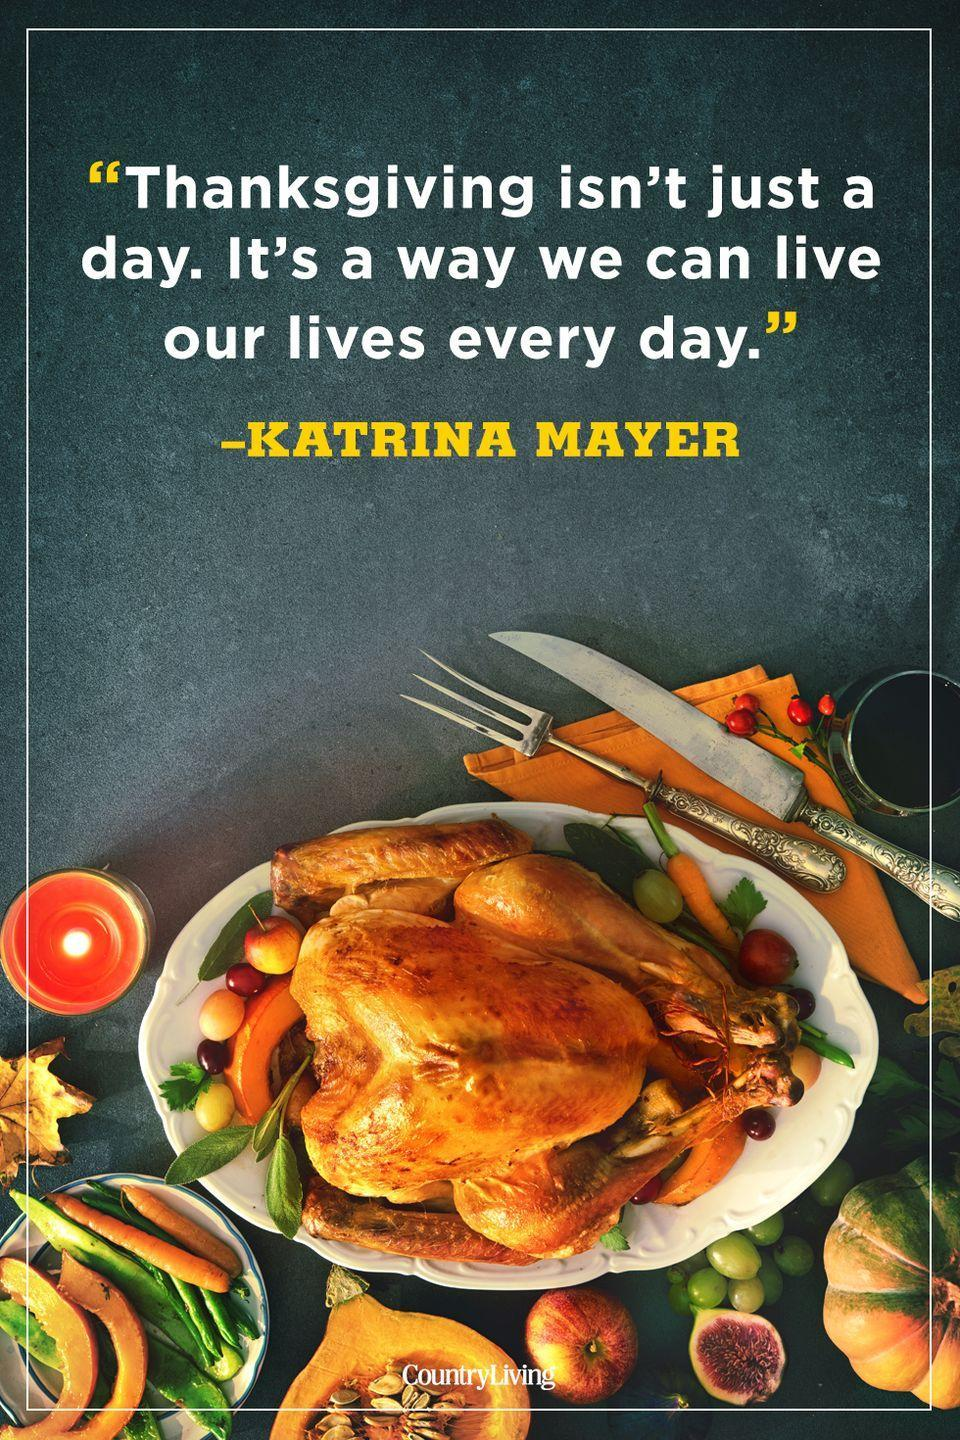 """<p>""""Thanksgiving isn't just a day. It's a way we can live our lives every day.""""</p>"""